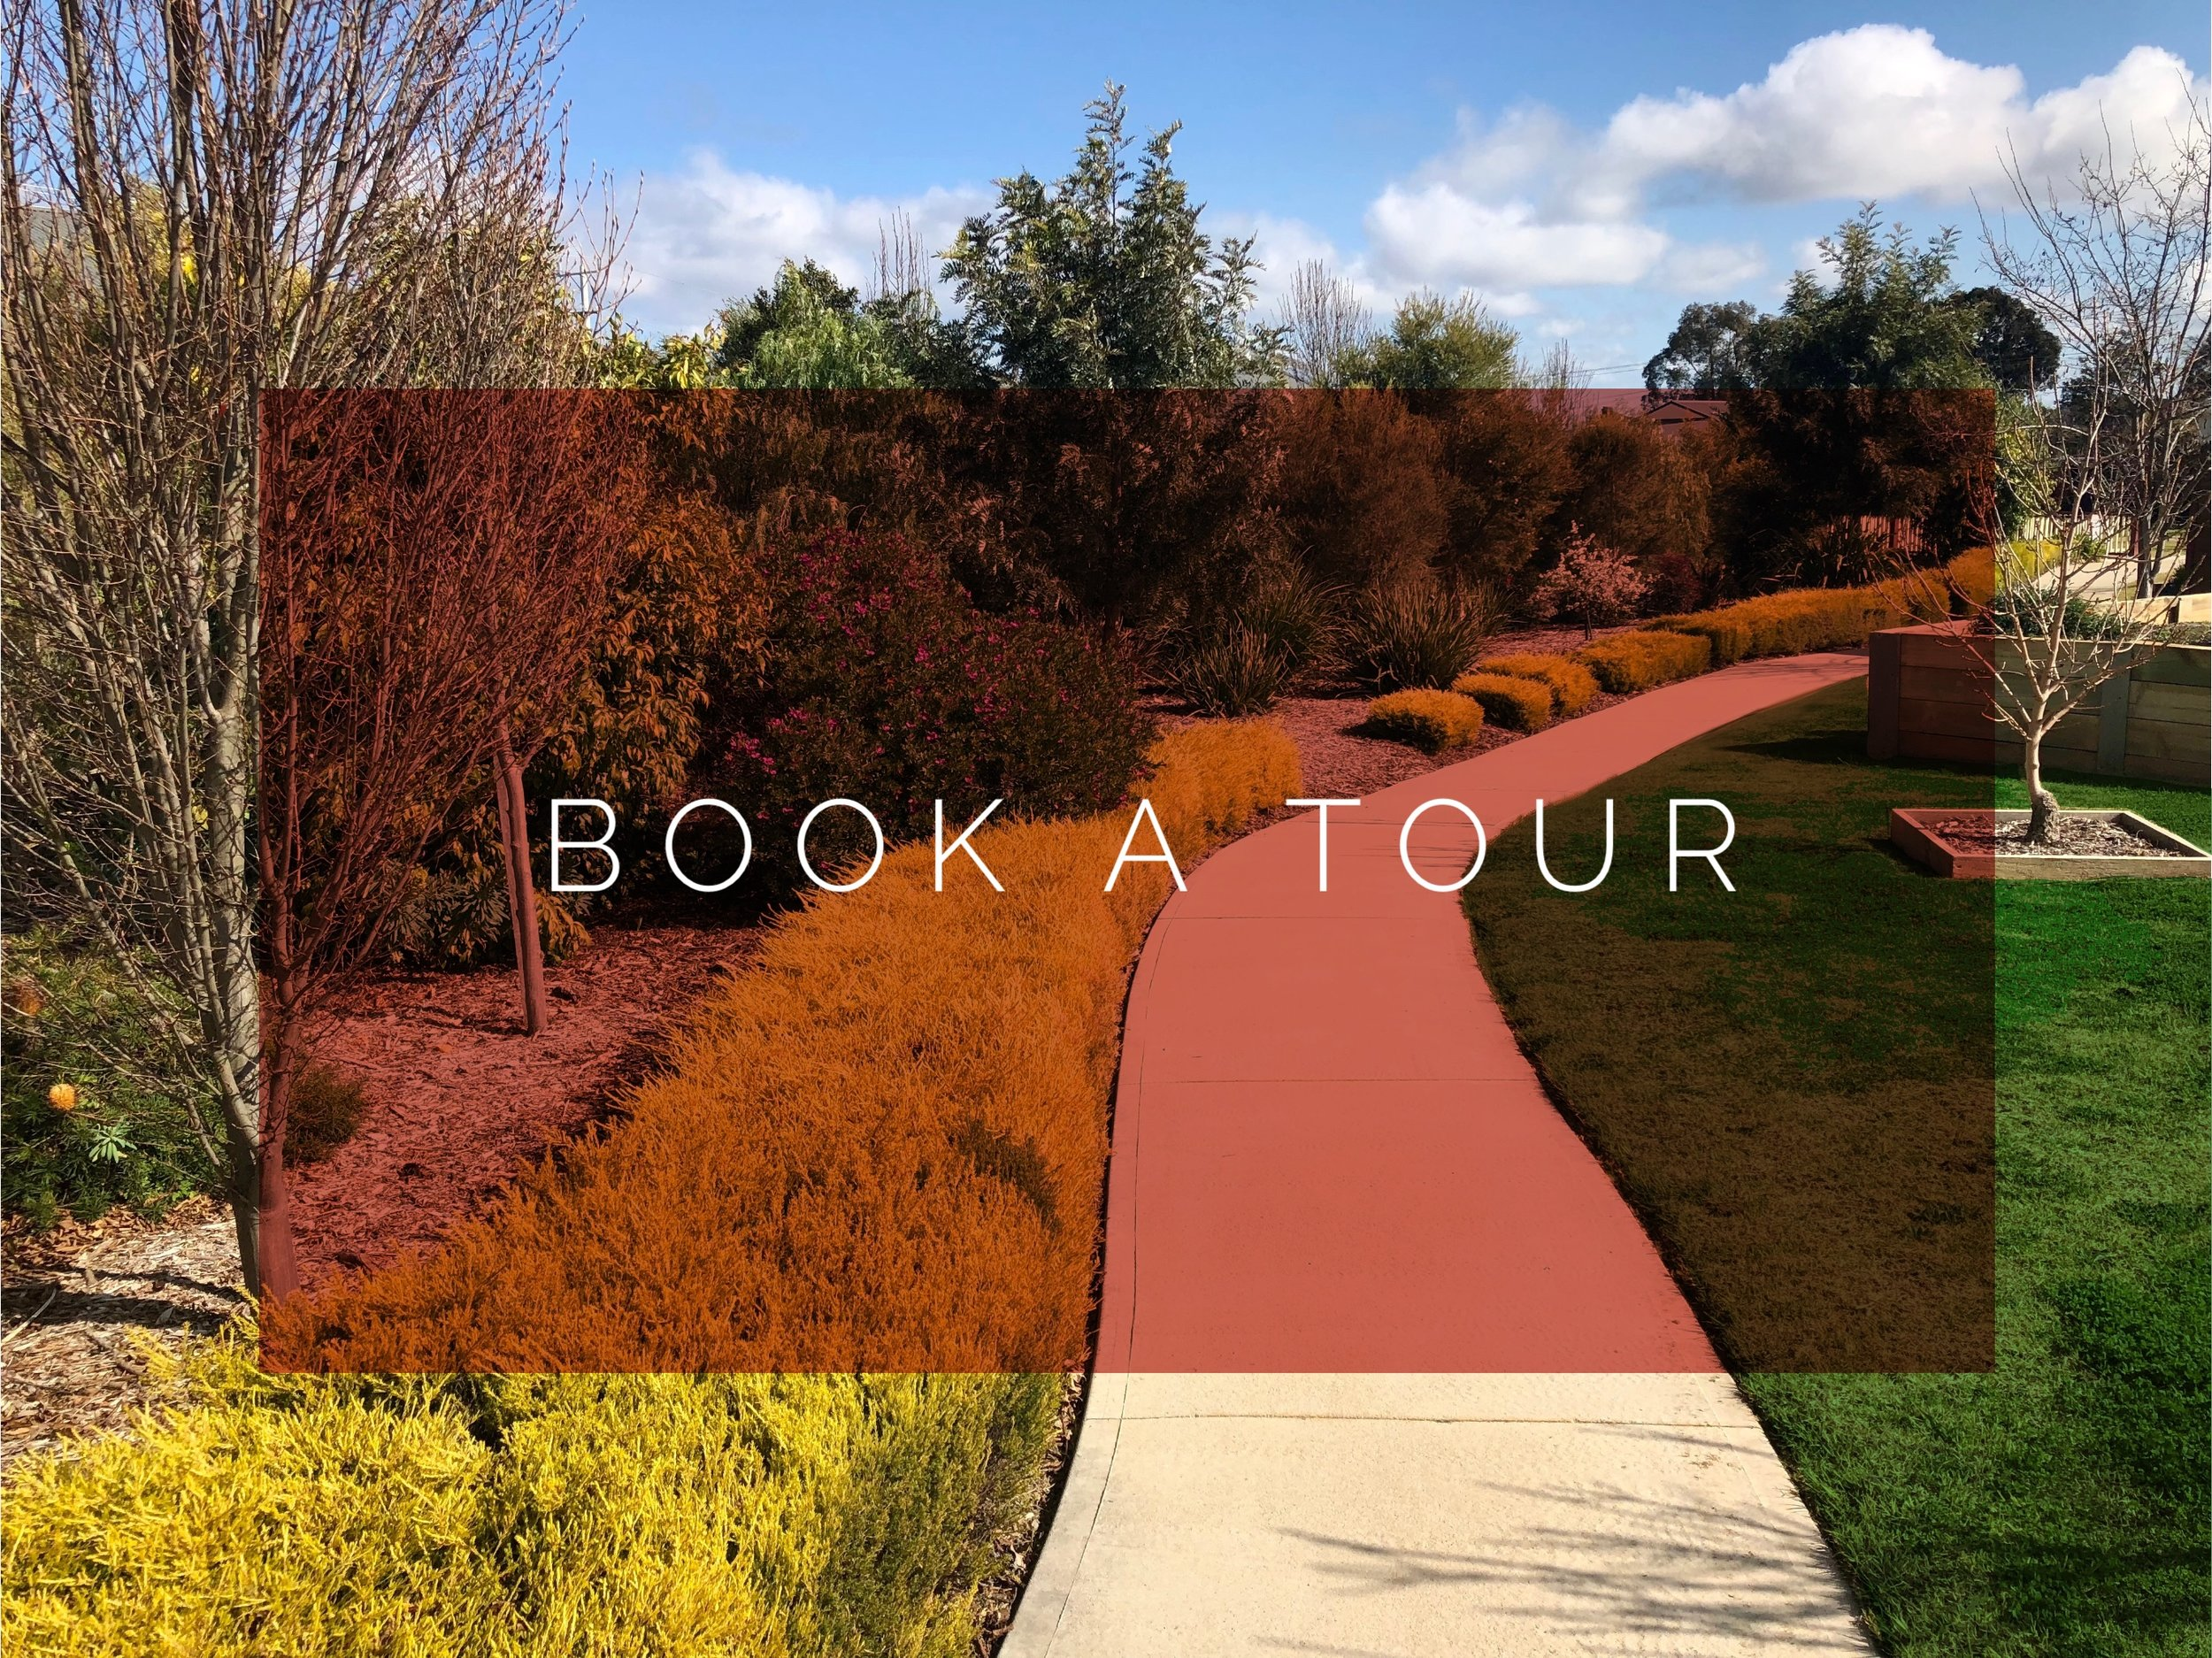 click here to book a tour